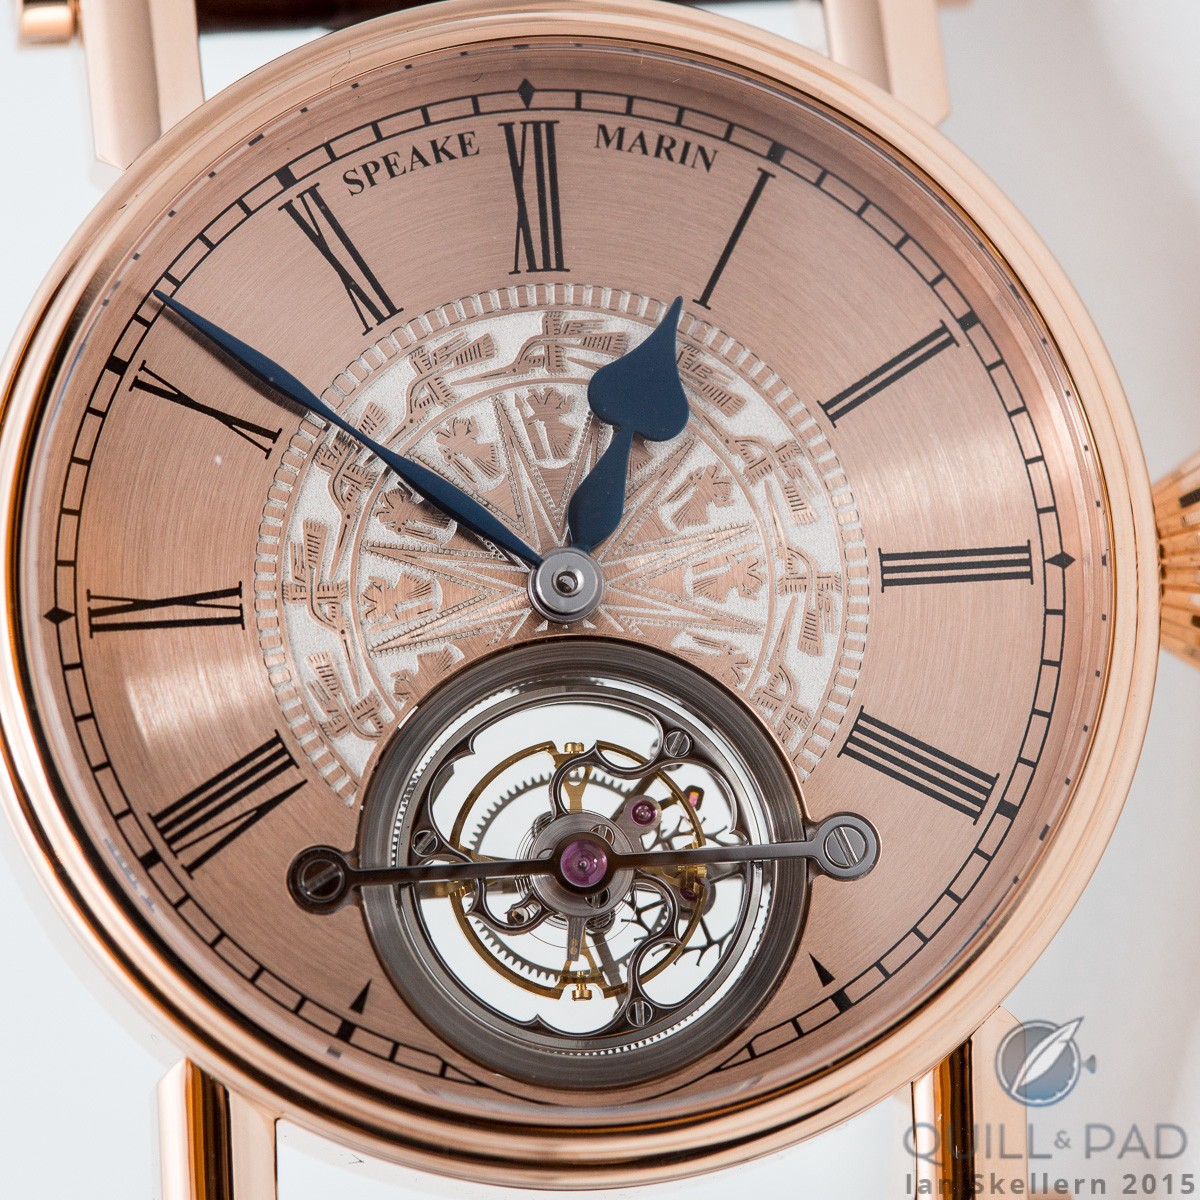 The Speake-Marin Dong Son Tourbillon